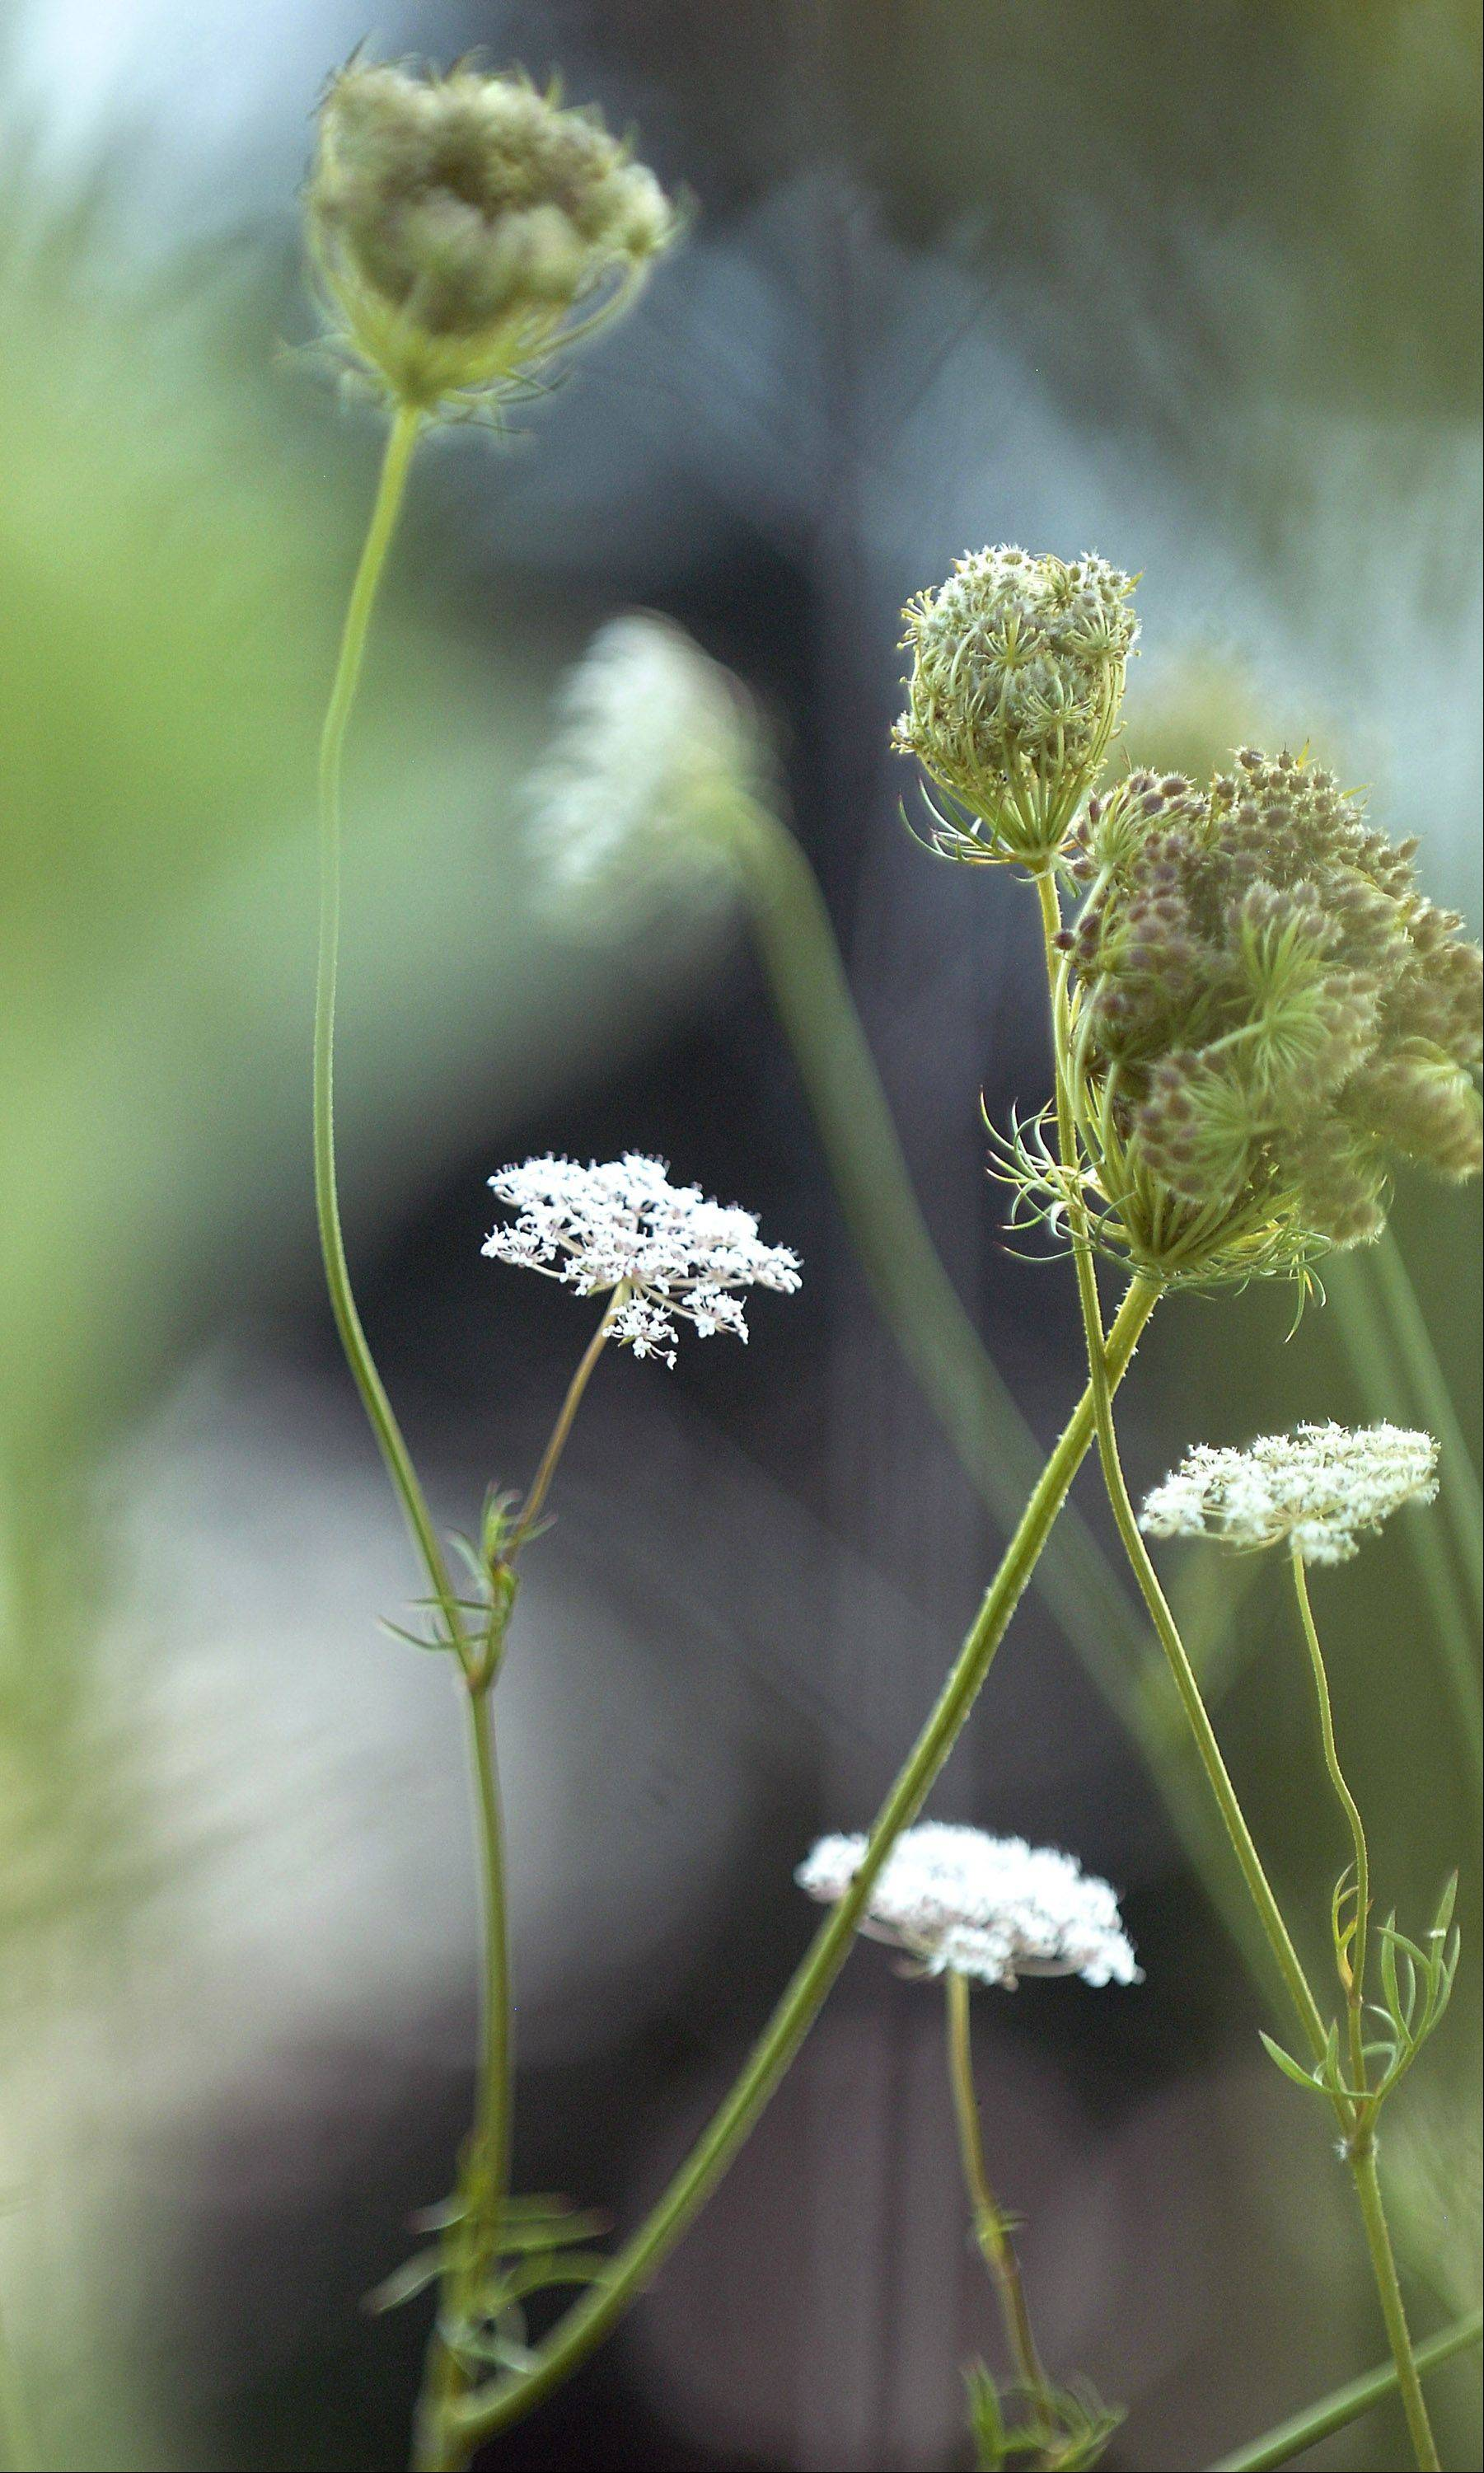 Queen Anne's Lace blooms at LeRoy Oakes in St. Charles.